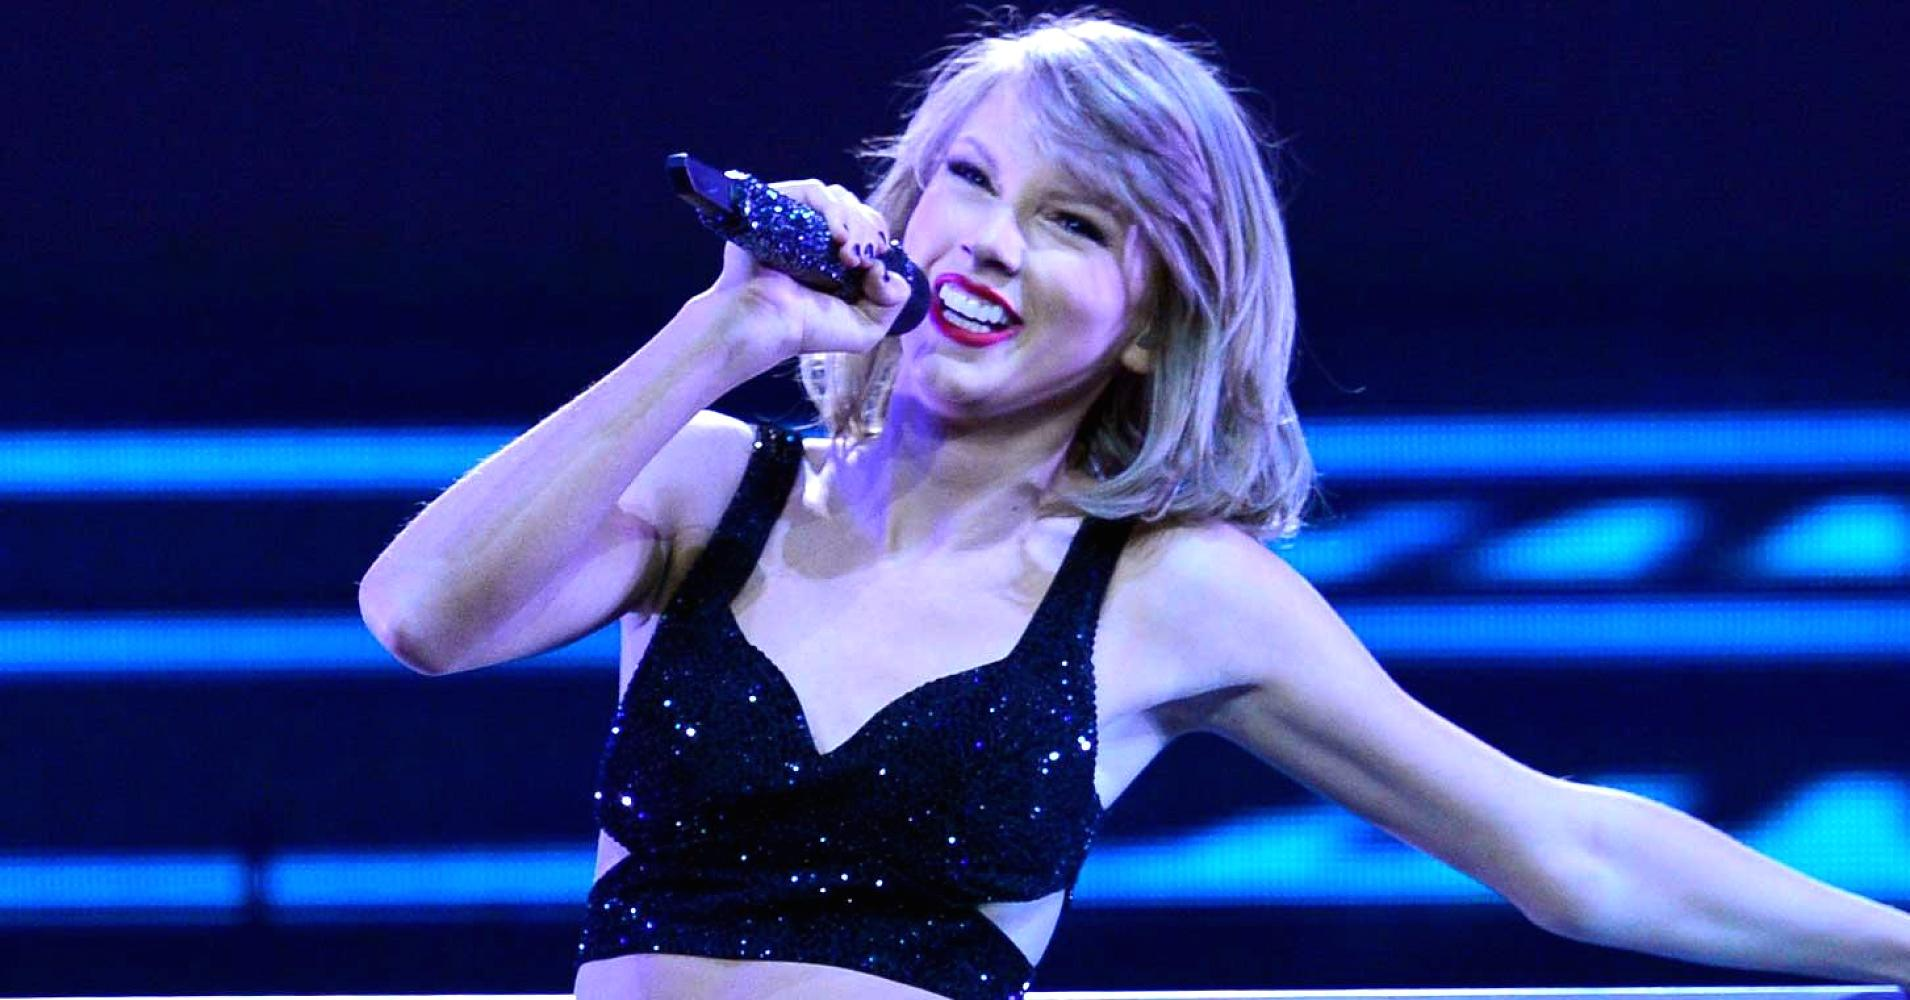 Apple Inc won a deal with pop star Taylor Swift to exclusively release a concert video of her recent world tour through its music streaming service. Image Credit: Daily Read List